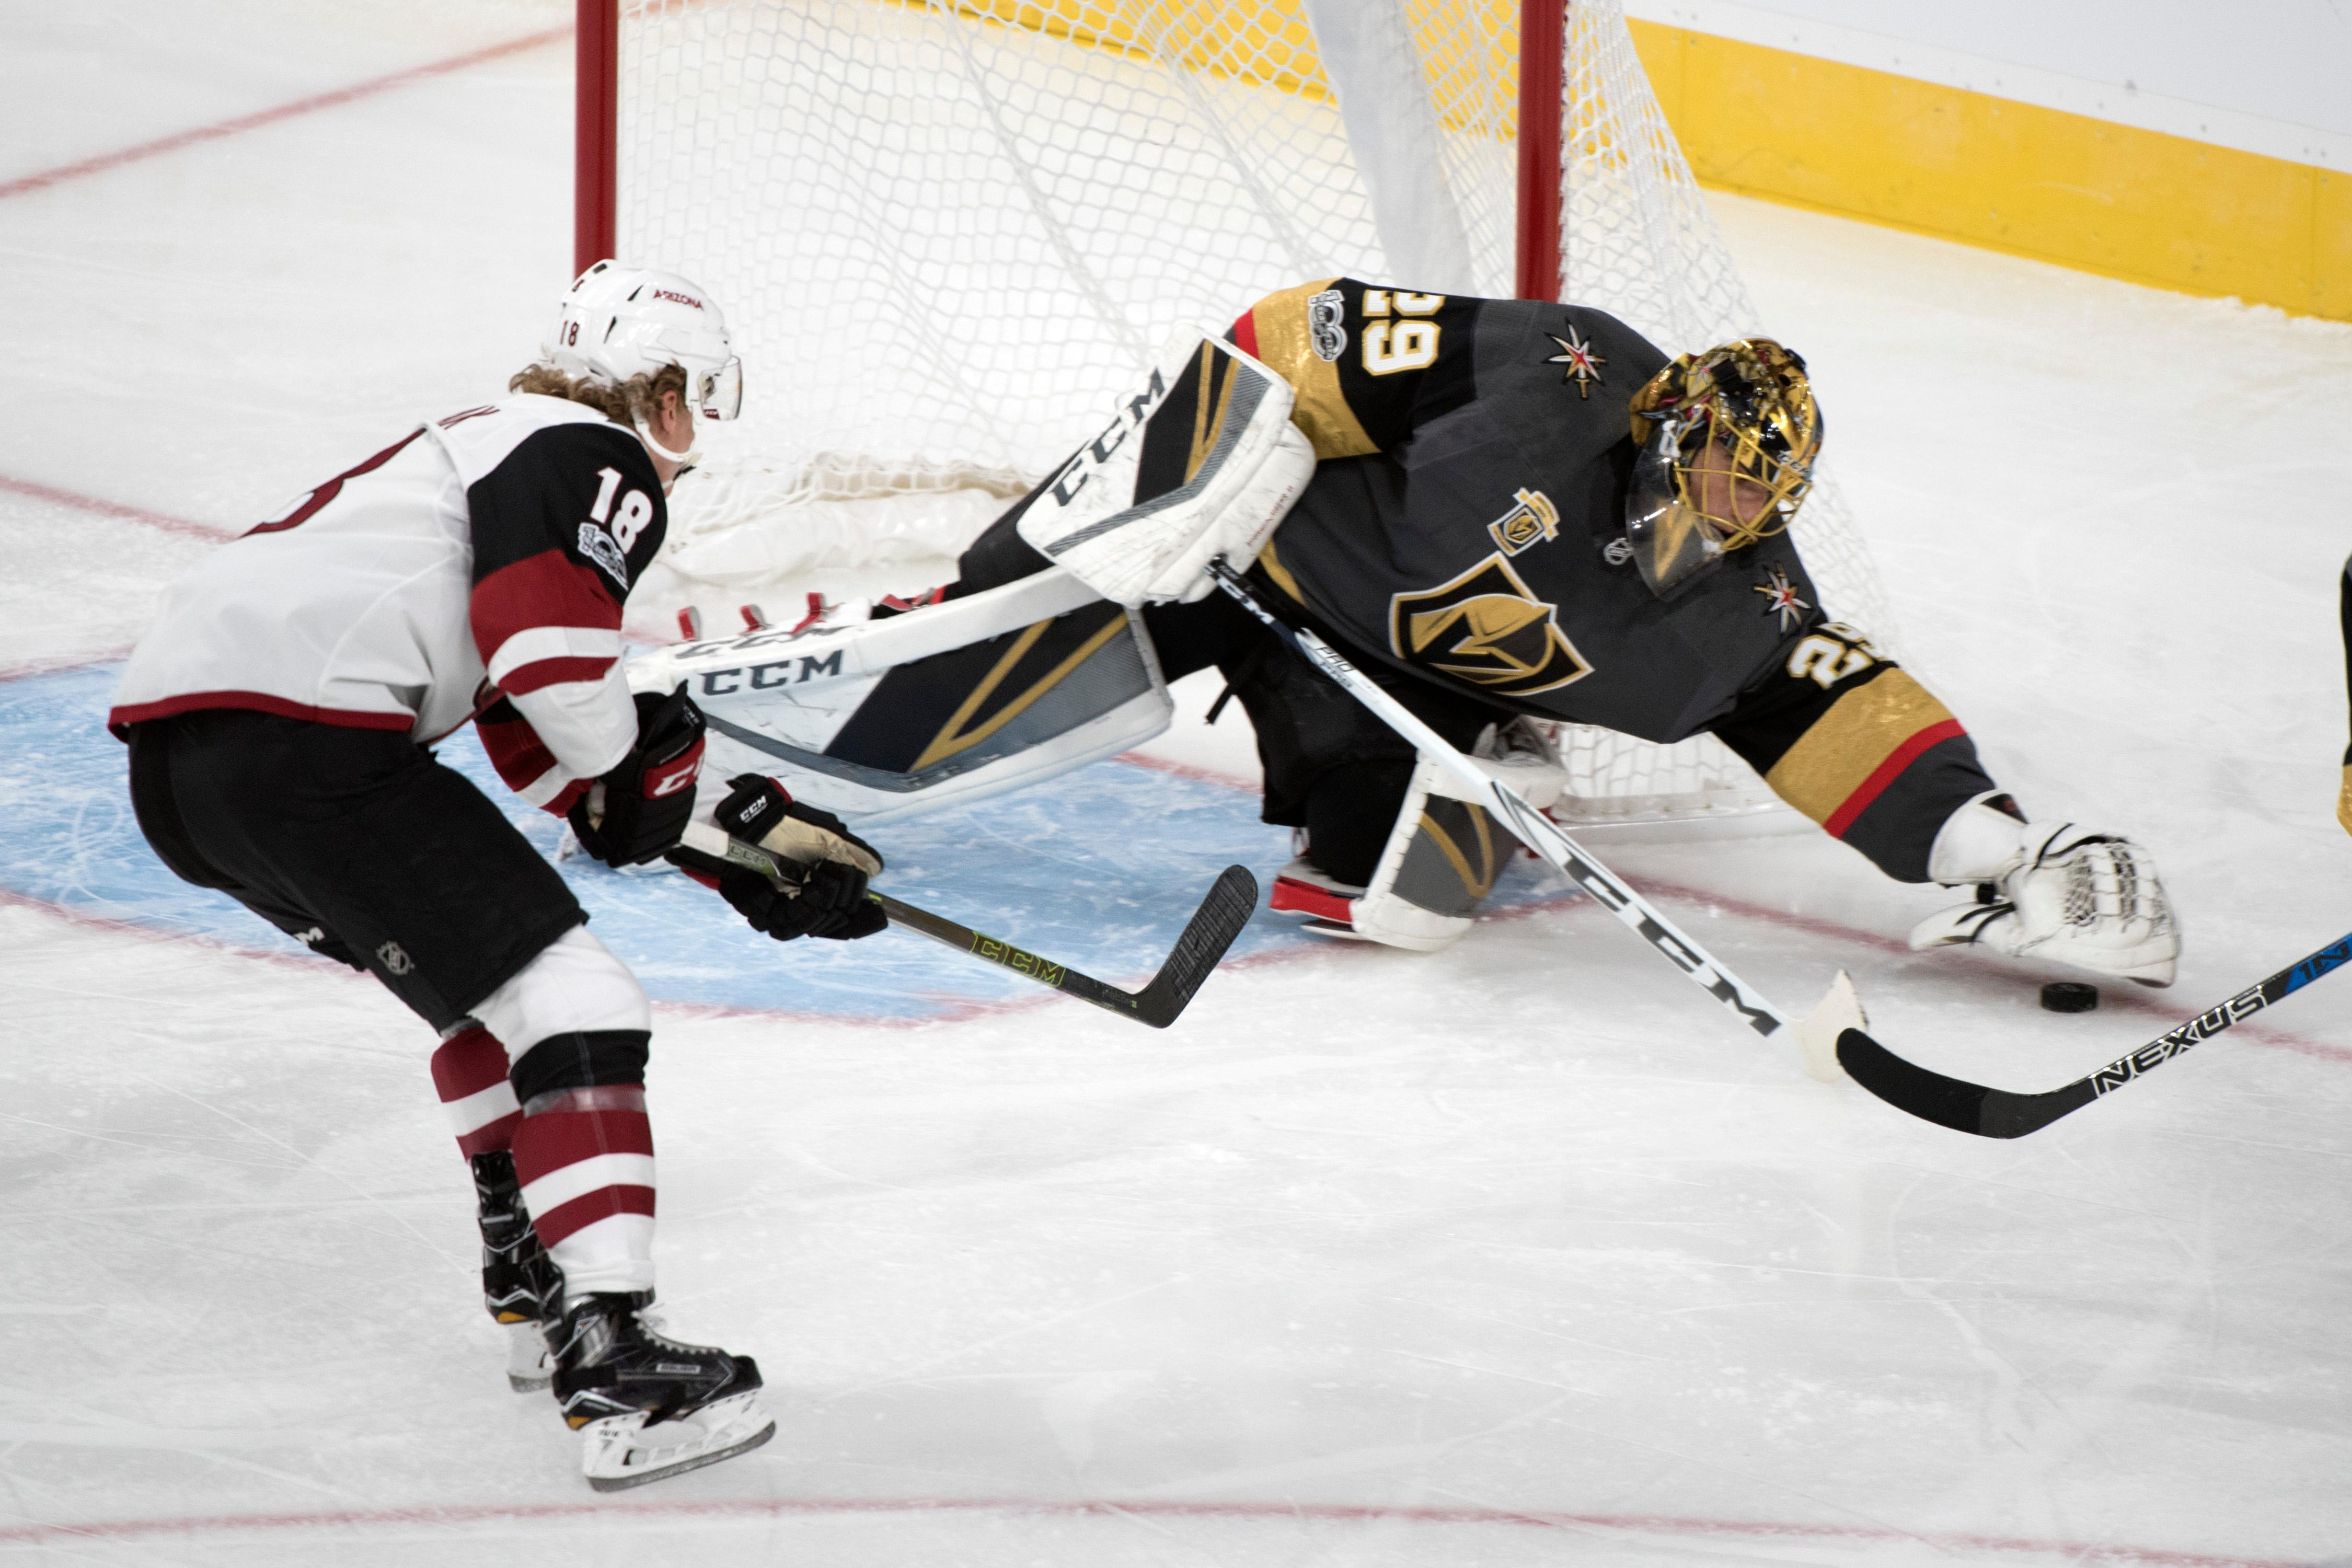 Vegas Golden Knights goalie Marc-Andre Fleury (29) makes one of his 31 saves against the Arizona Coyotes during the Knights home opener Tuesday, Oct. 10, 2017, at the T-Mobile Arena. The Knights won 5-2 to extend their winning streak to 3-0. CREDIT: Sam Morris/Las Vegas News Bureau